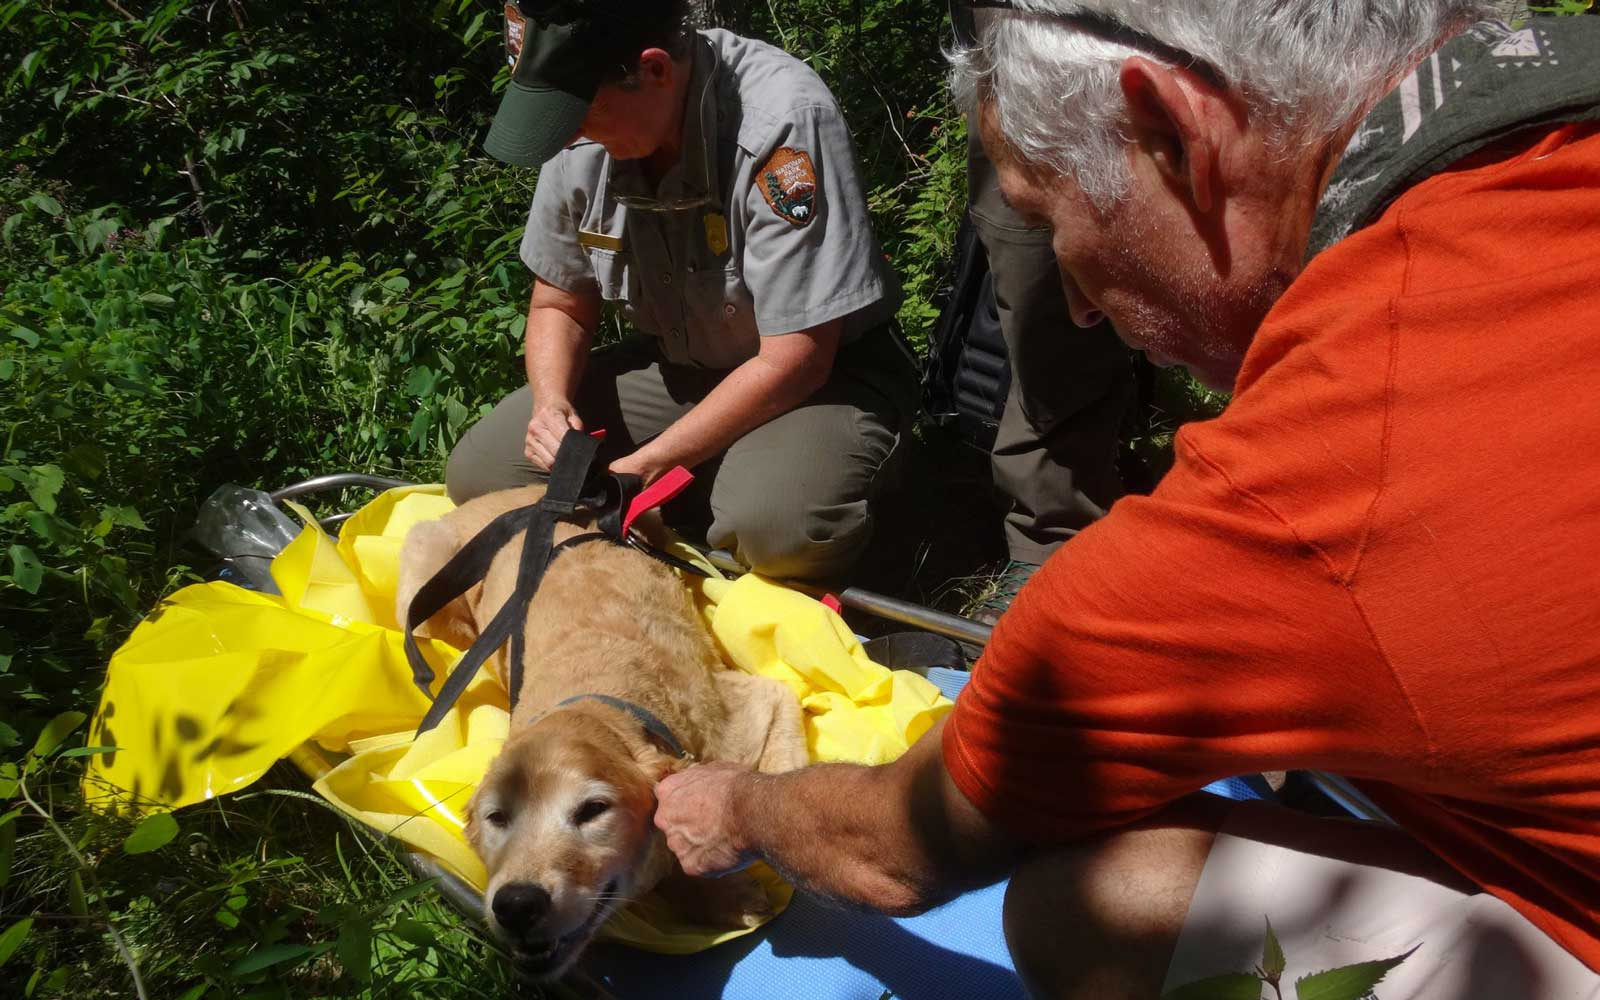 Hikers Find Dog After He Spent 11 Days Lost in Shenandoah National Park